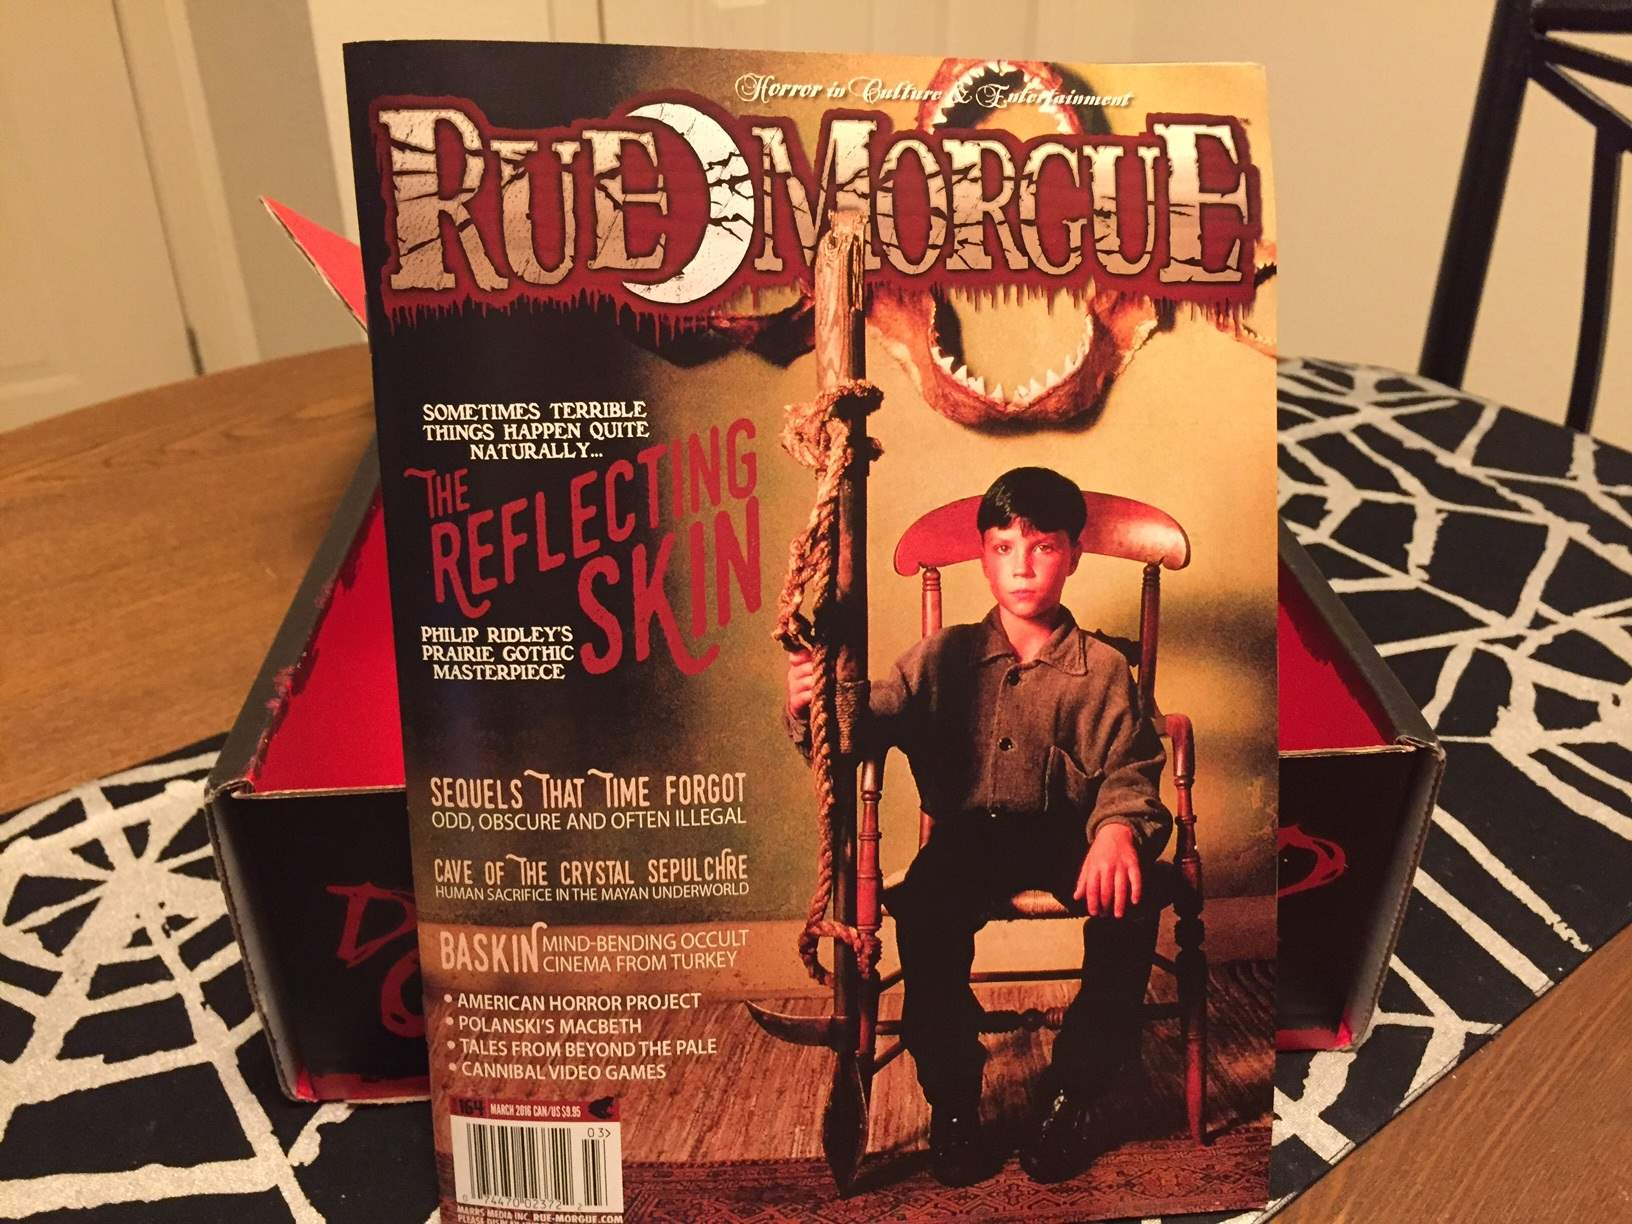 The March issue of Rue Morgue magazine in February 2016's Horror Block